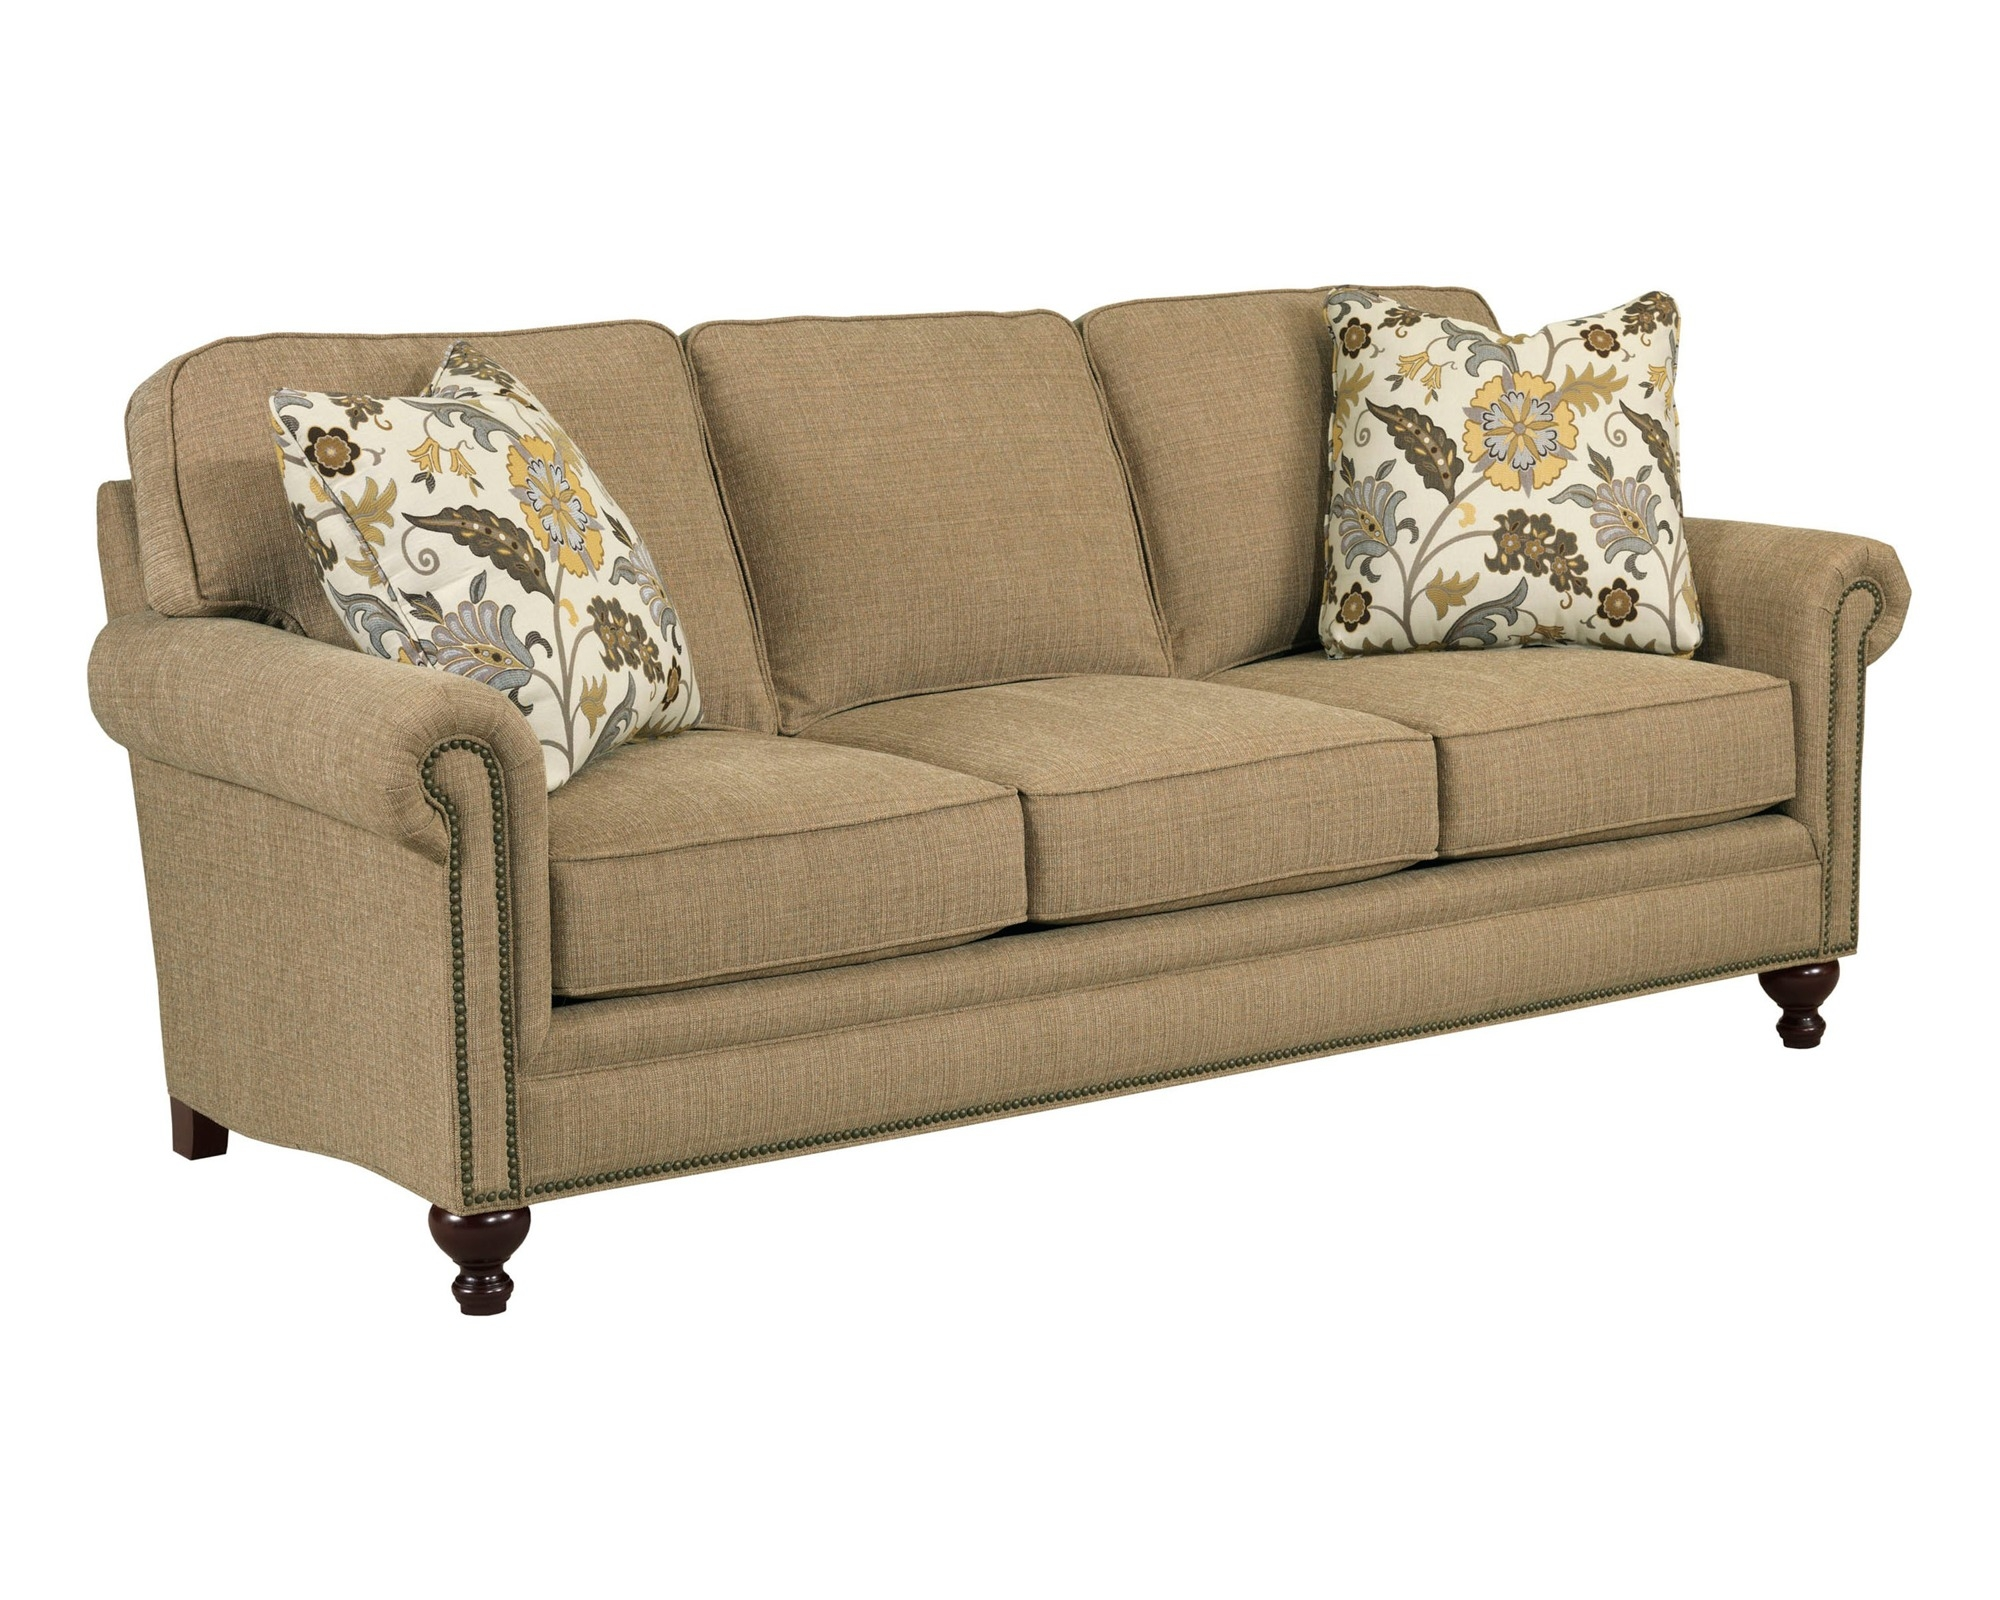 Harrison Sofa Broyhill Home Gallery Stores Intended For Broyhill Sectional Sofas (Image 11 of 15)